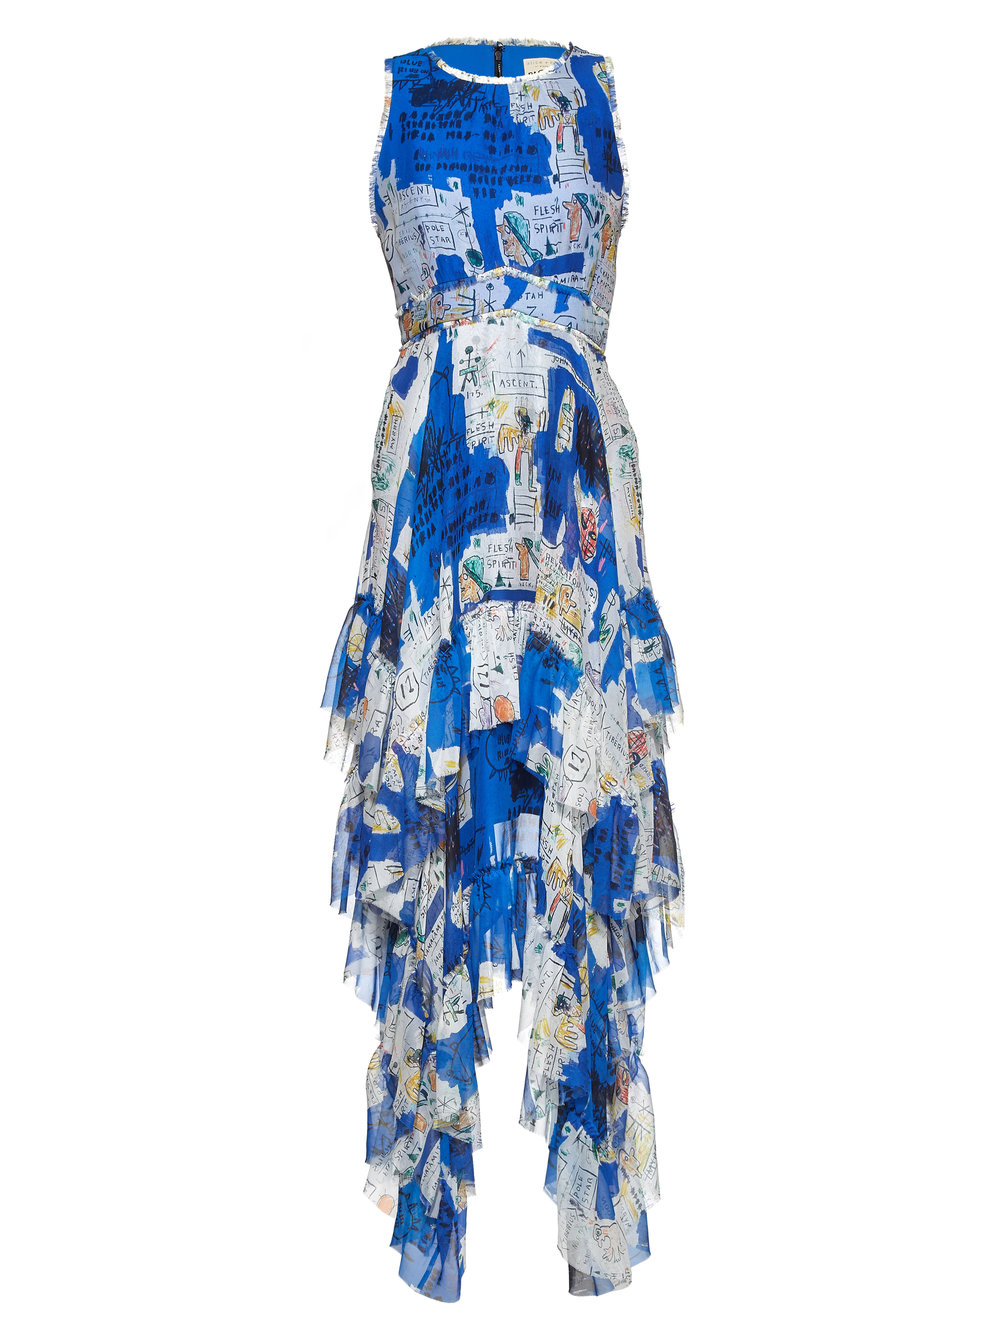 alice_and_olivia_ILIACREWNECKRAWEDGERUFFLEMAXIDRESS_ASCENT_PRINT_888819404888_PRODUCT_05-2114102835.jpg